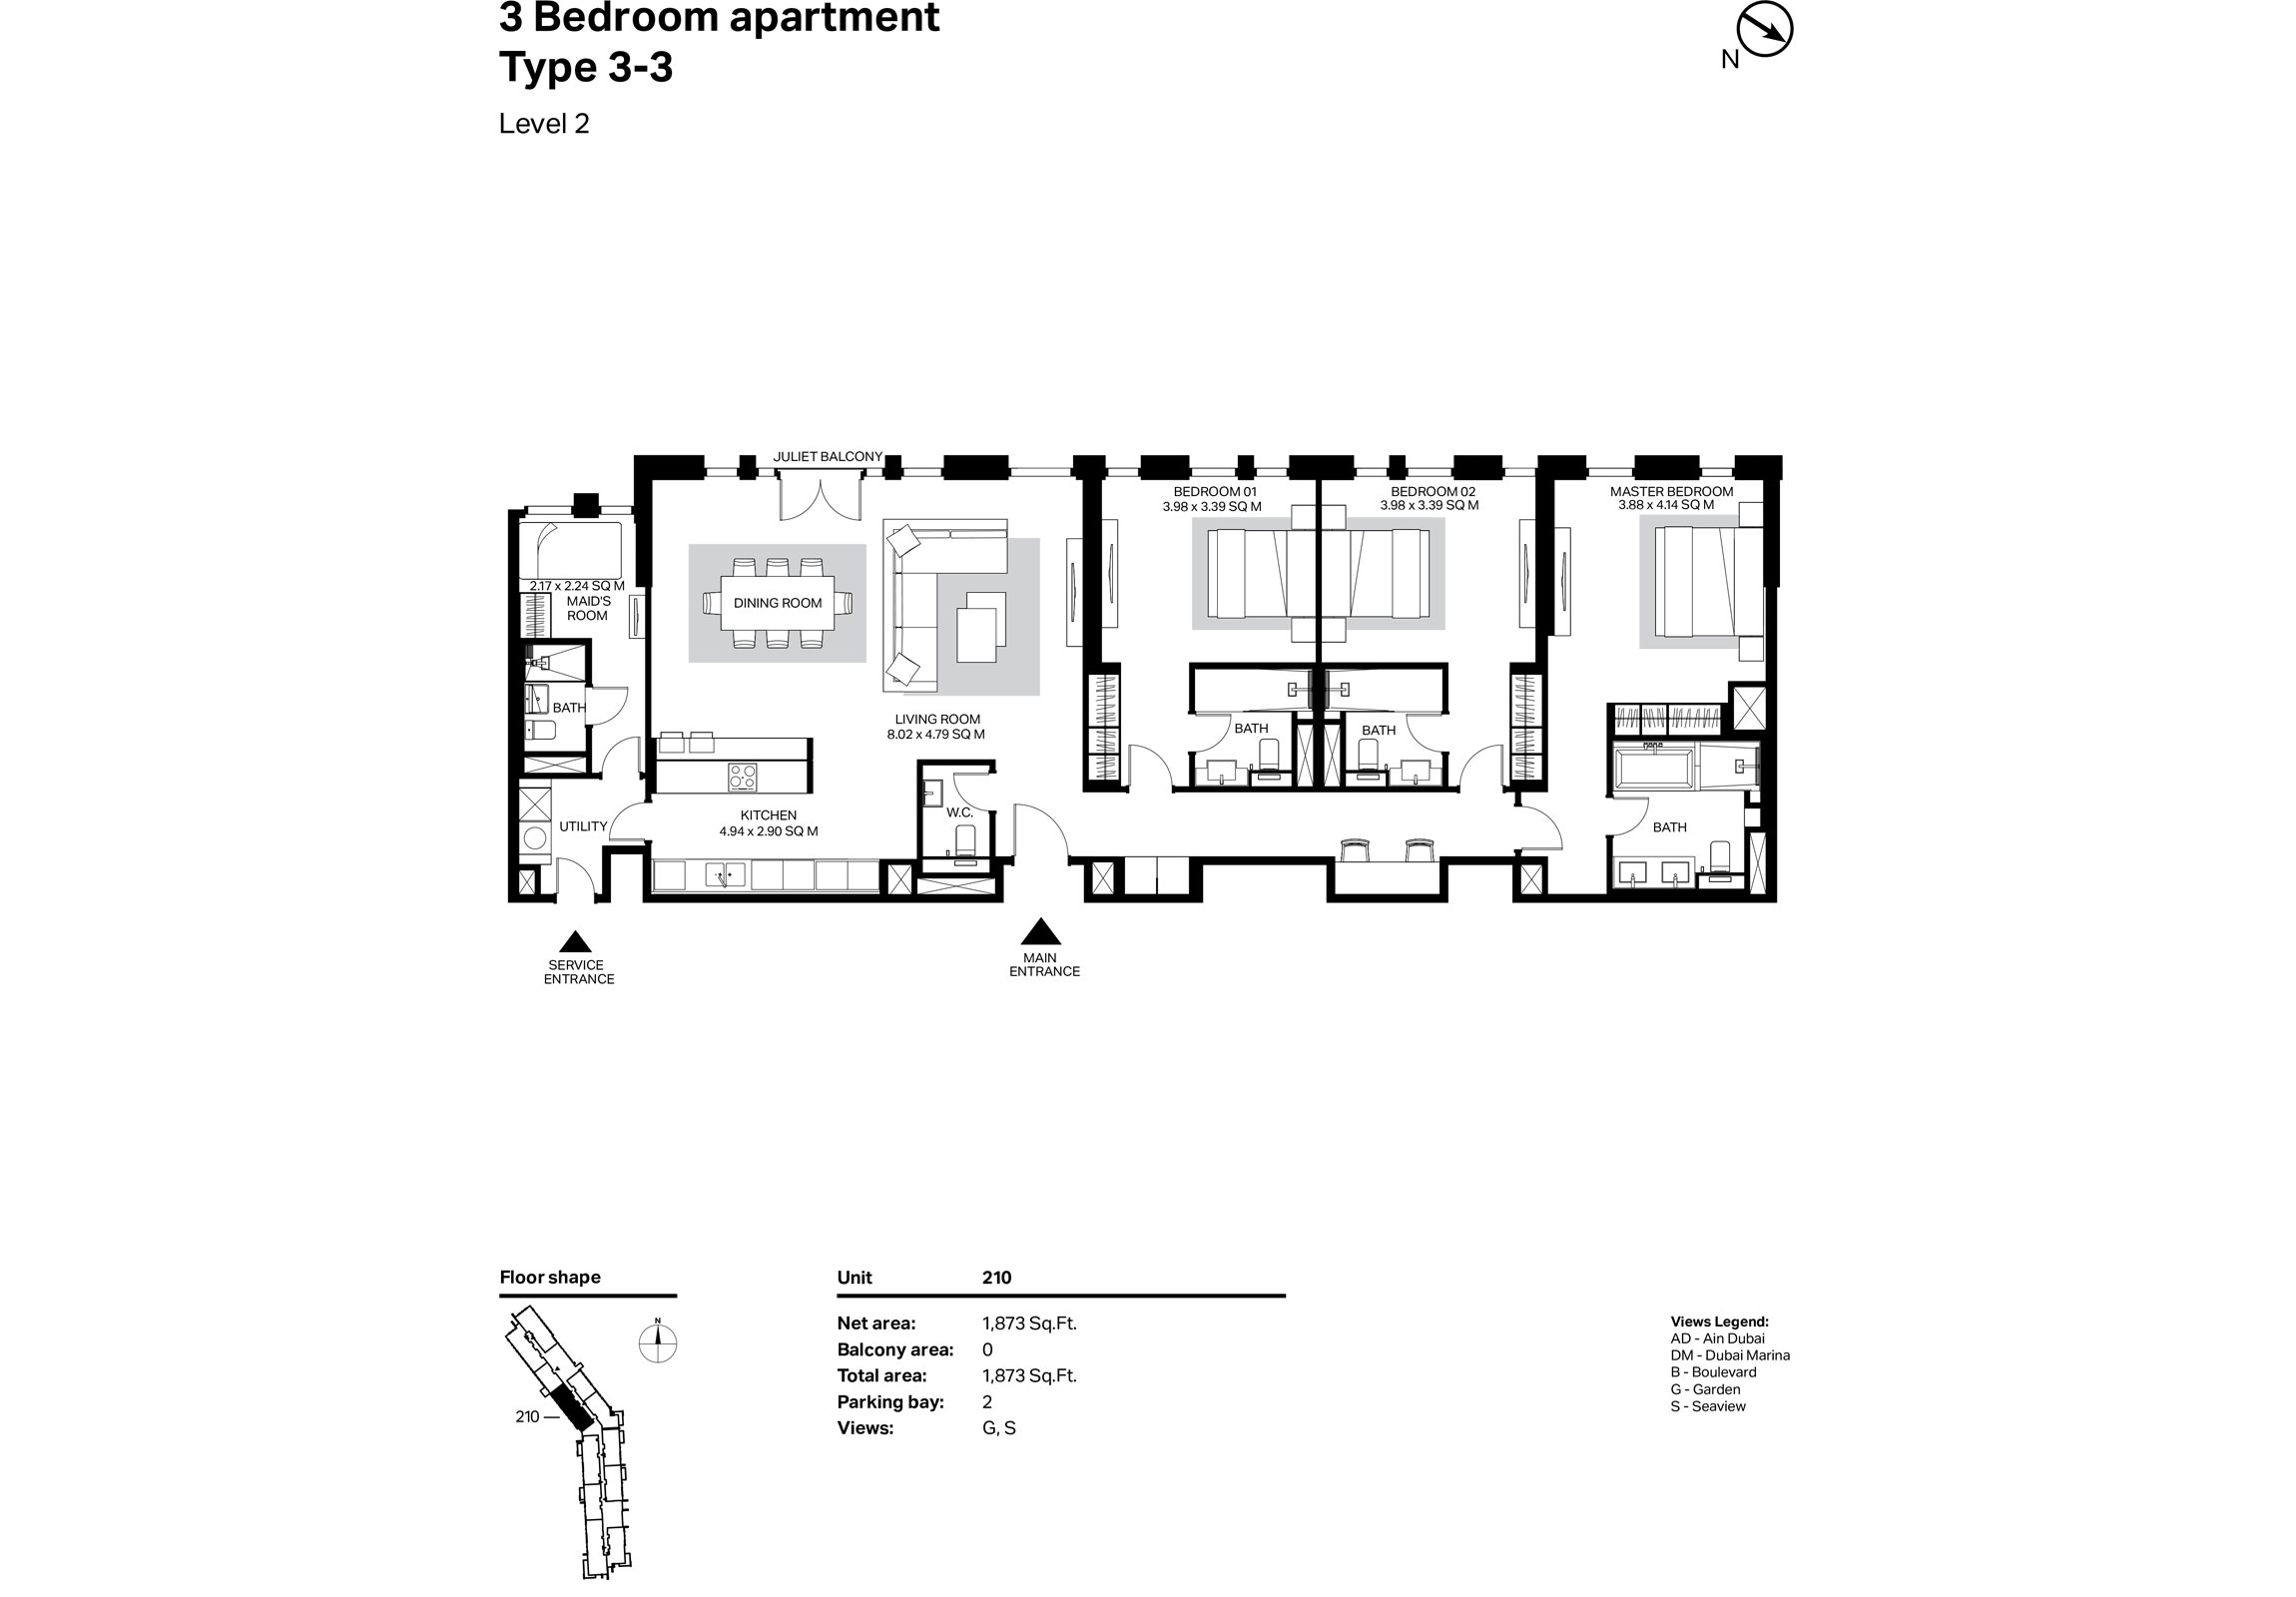 Building 2 - 3 Bedroom Type 3-3 Level 2 Size 1873    sq. ft.